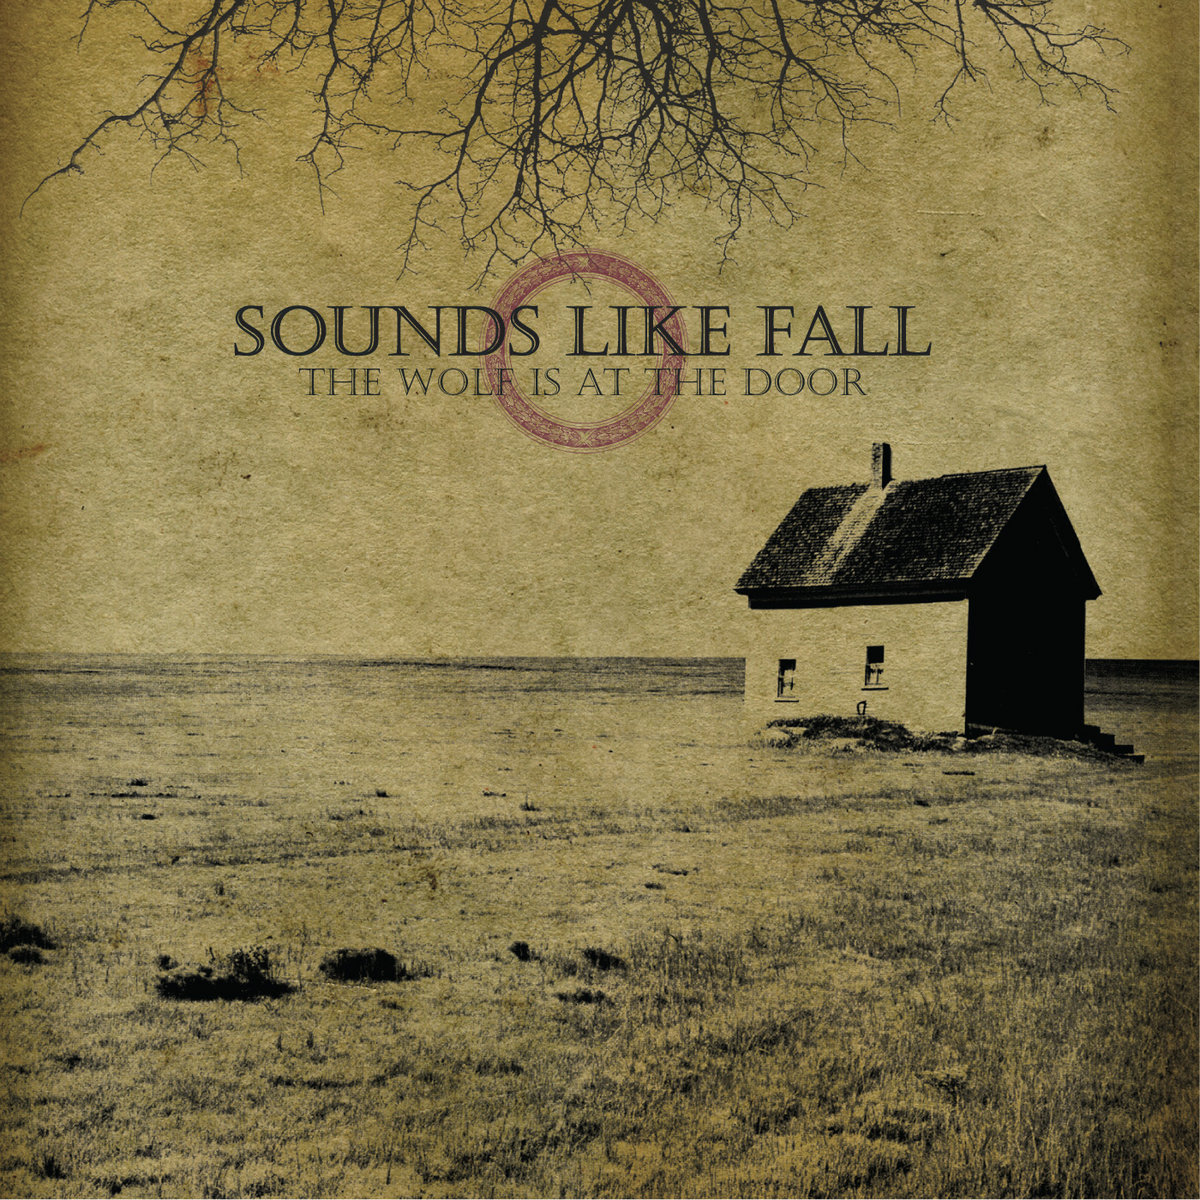 by Sounds Like Fall & The Wolf is at the Door | Yer Bird Records